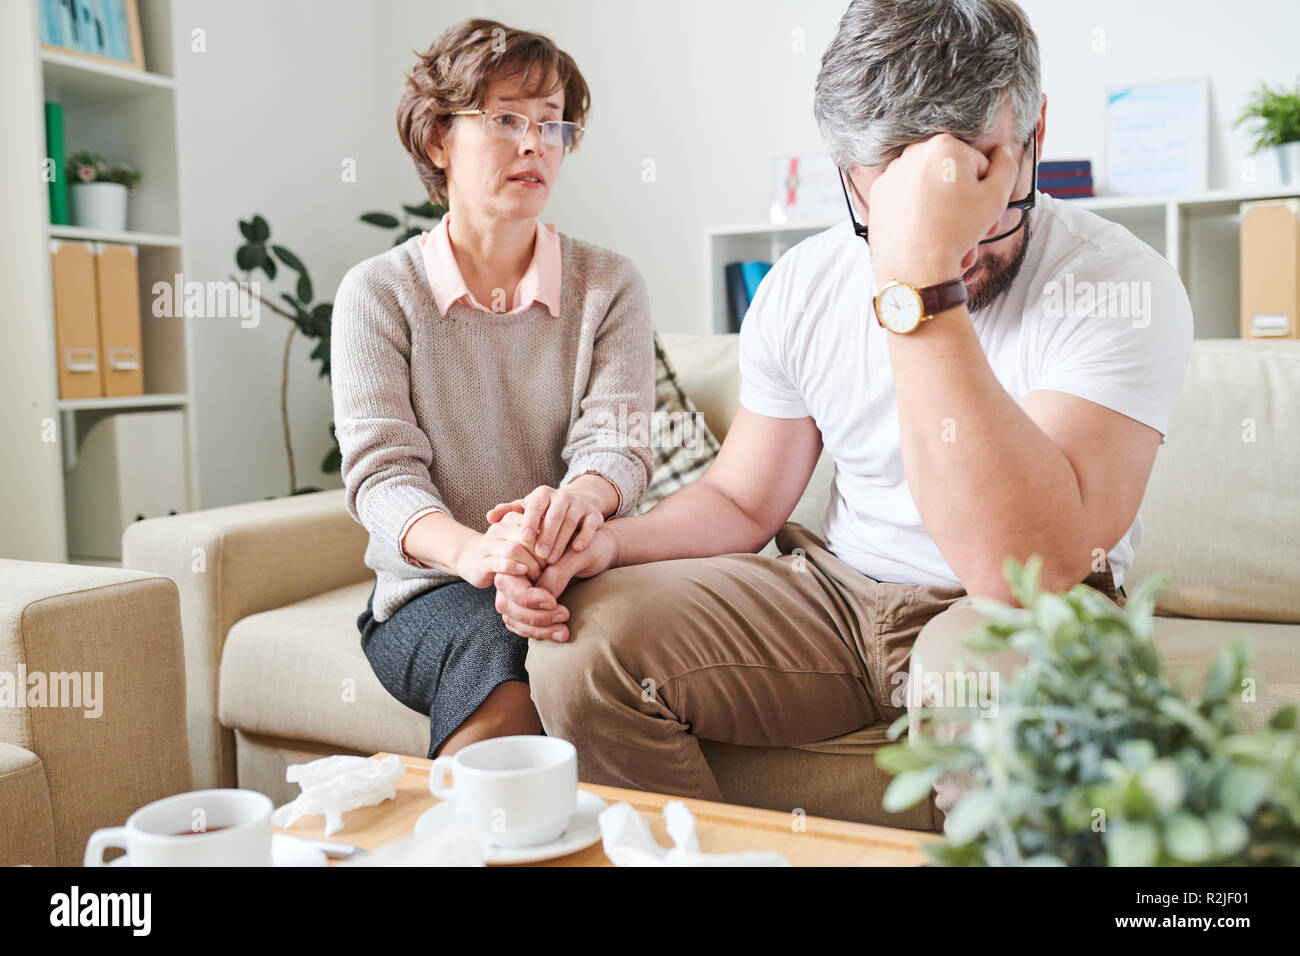 Despaired man coping with emotions at therapy session - Stock Image